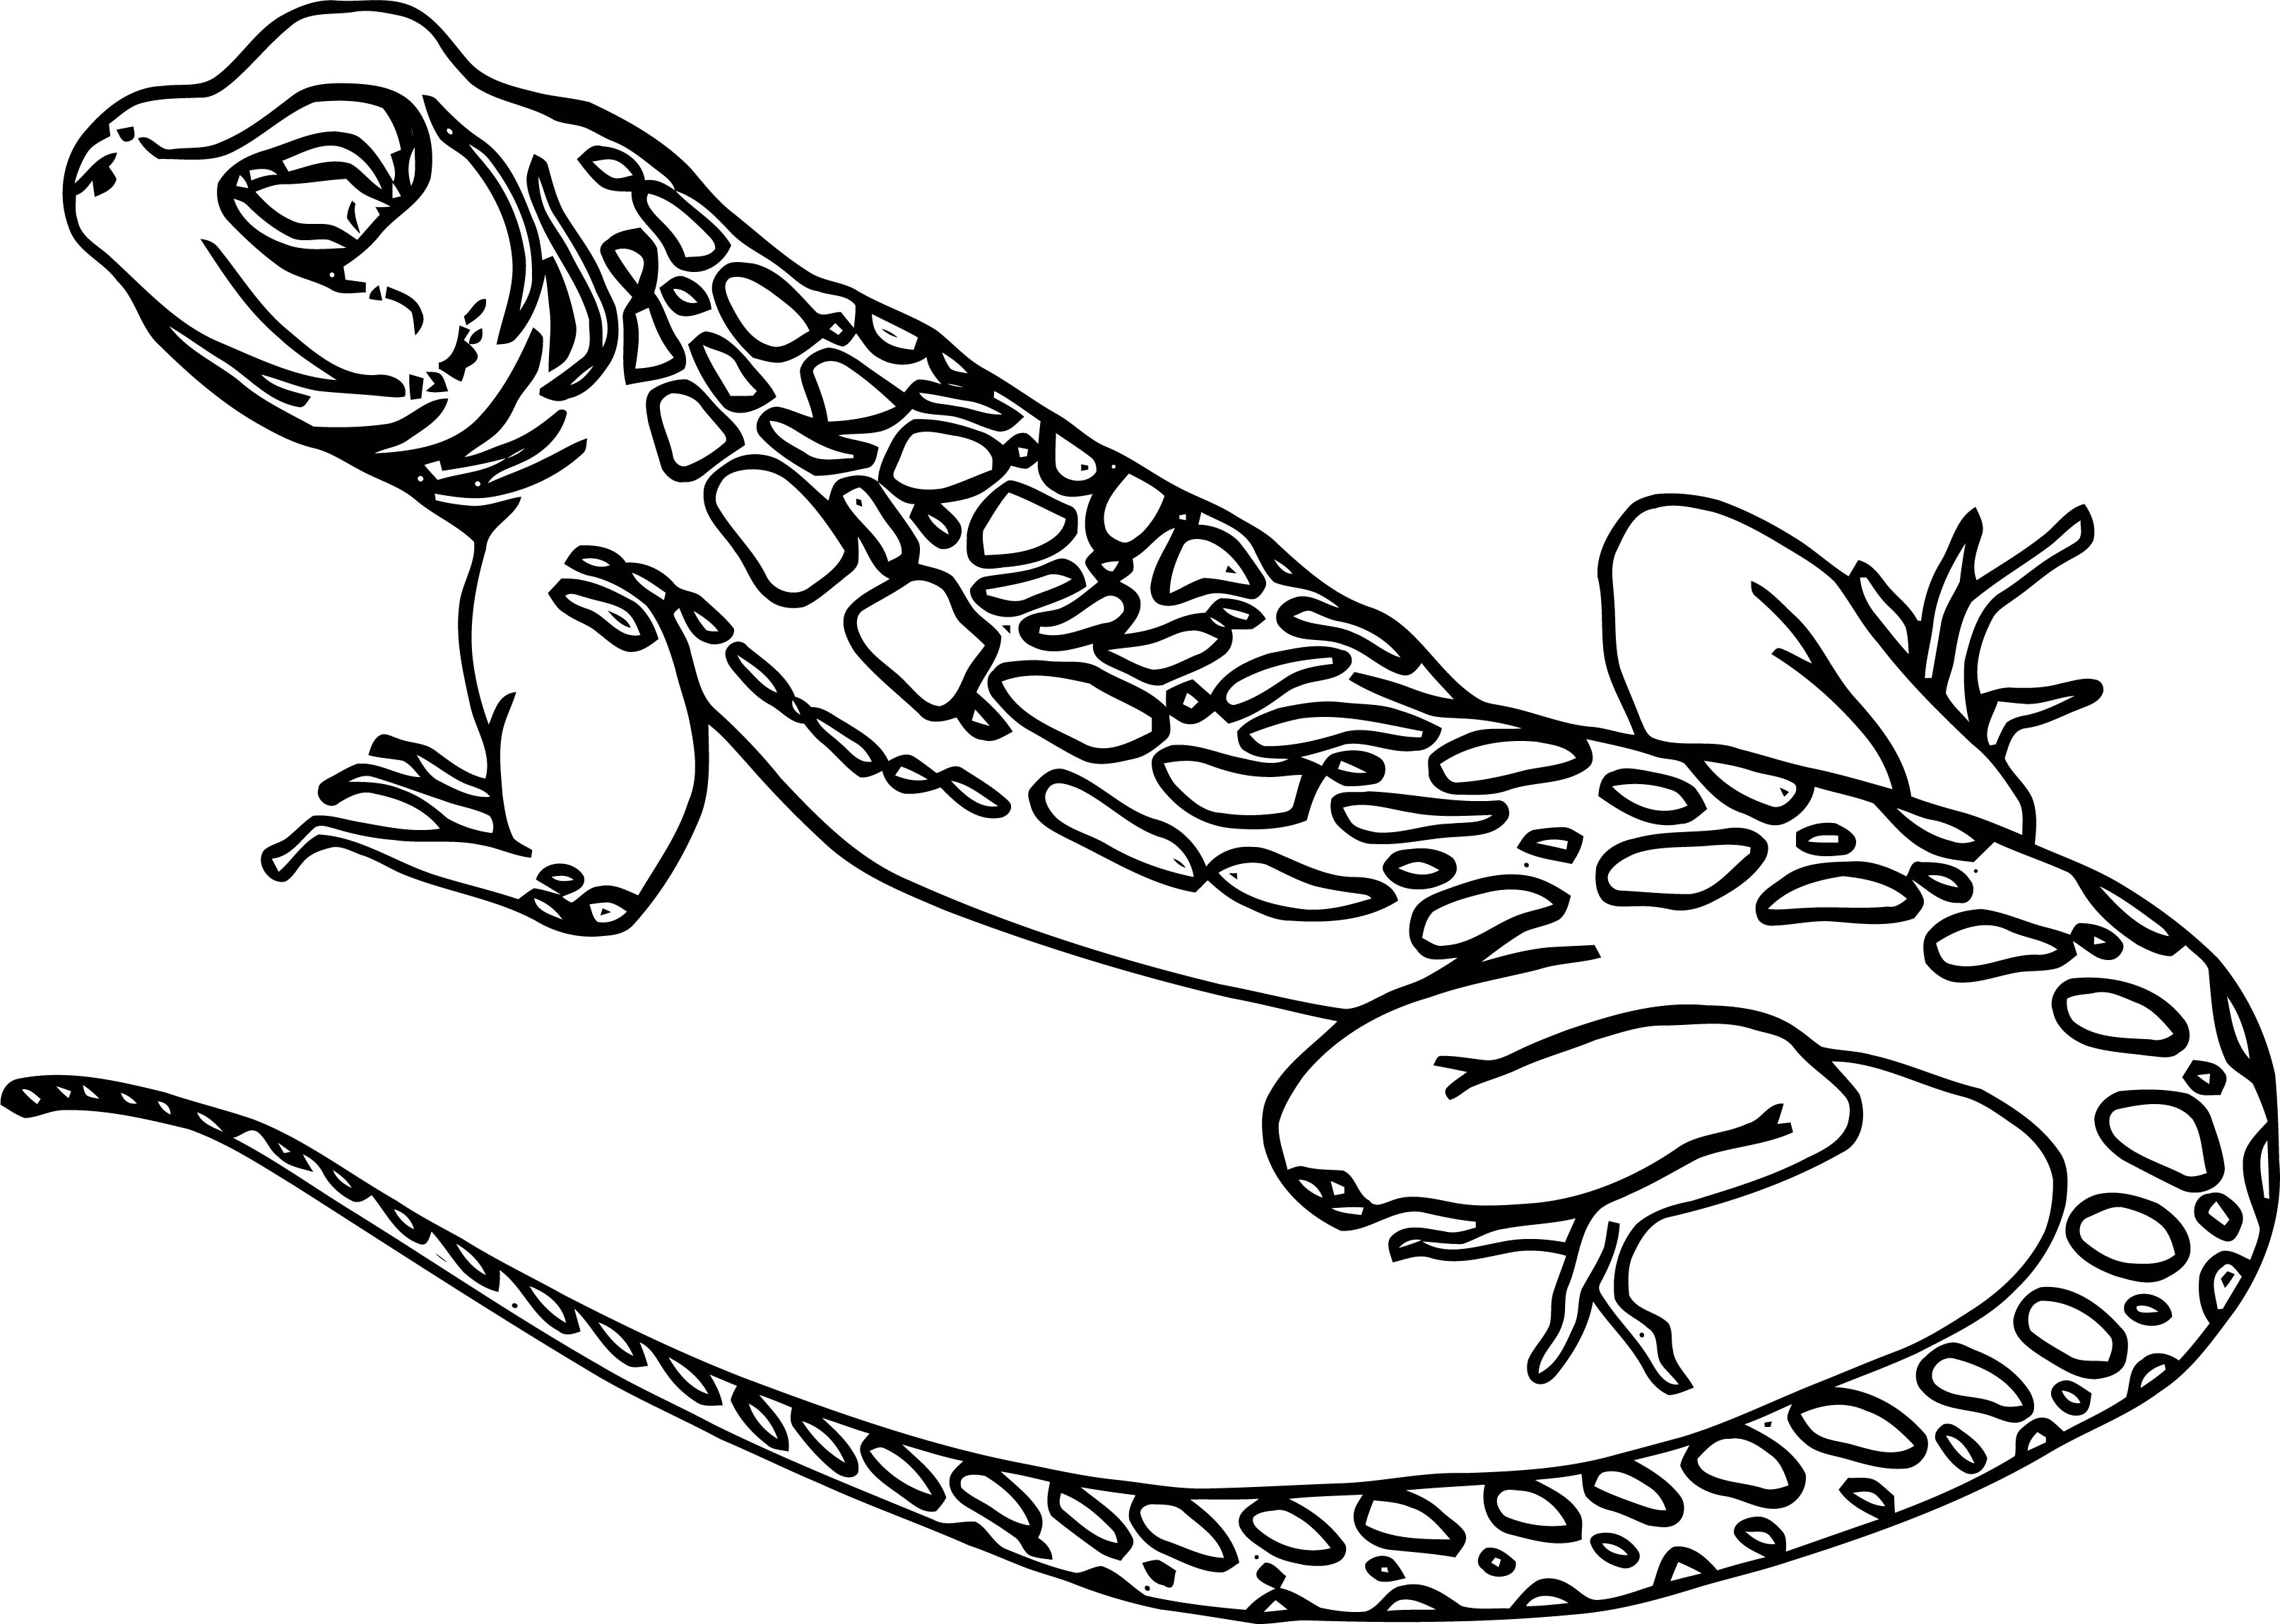 Lizard Coloring Page 12